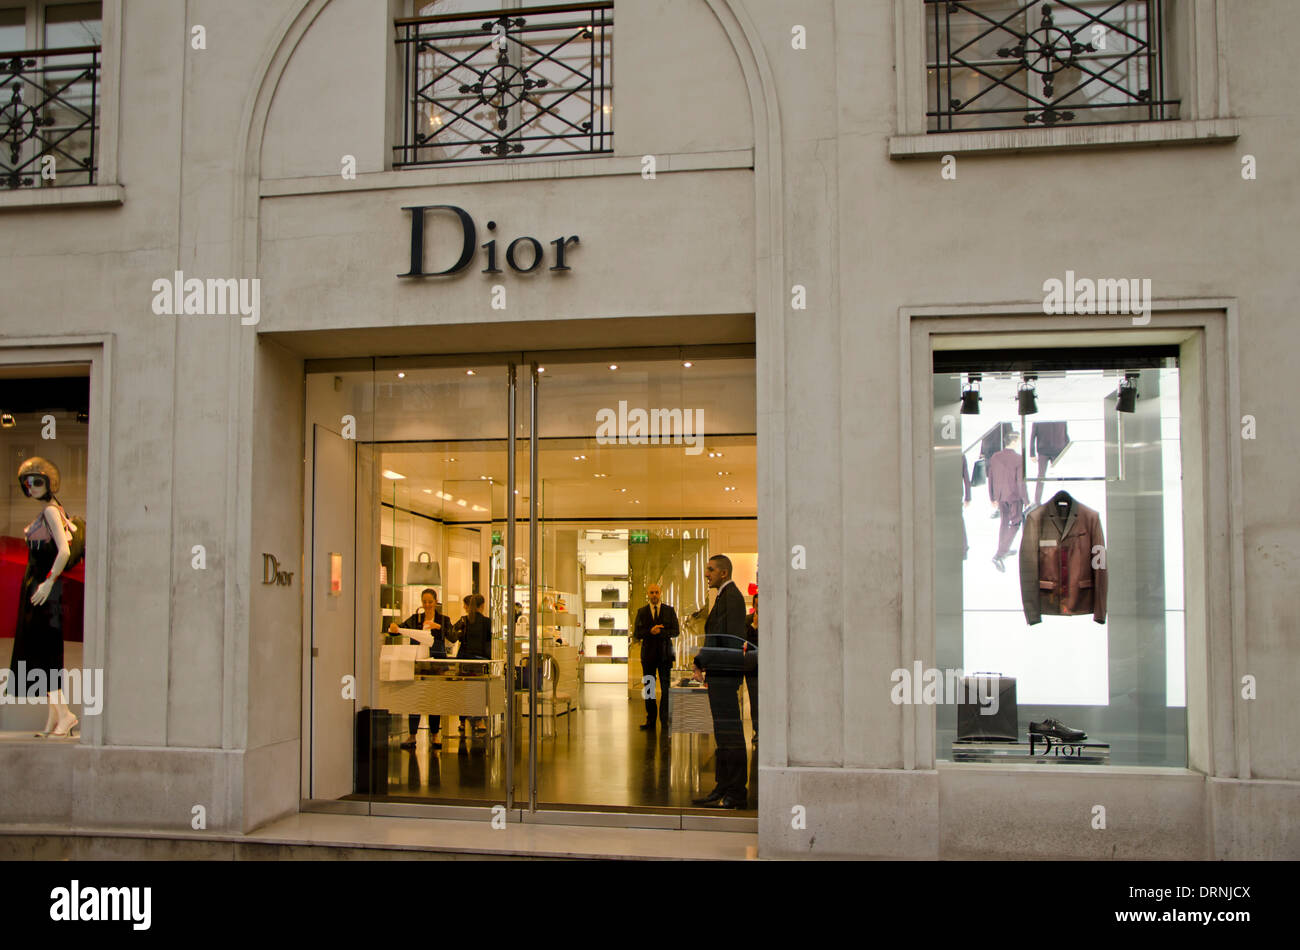 facade of a christian dior fashion store shop in paris france stock photo royalty free image. Black Bedroom Furniture Sets. Home Design Ideas